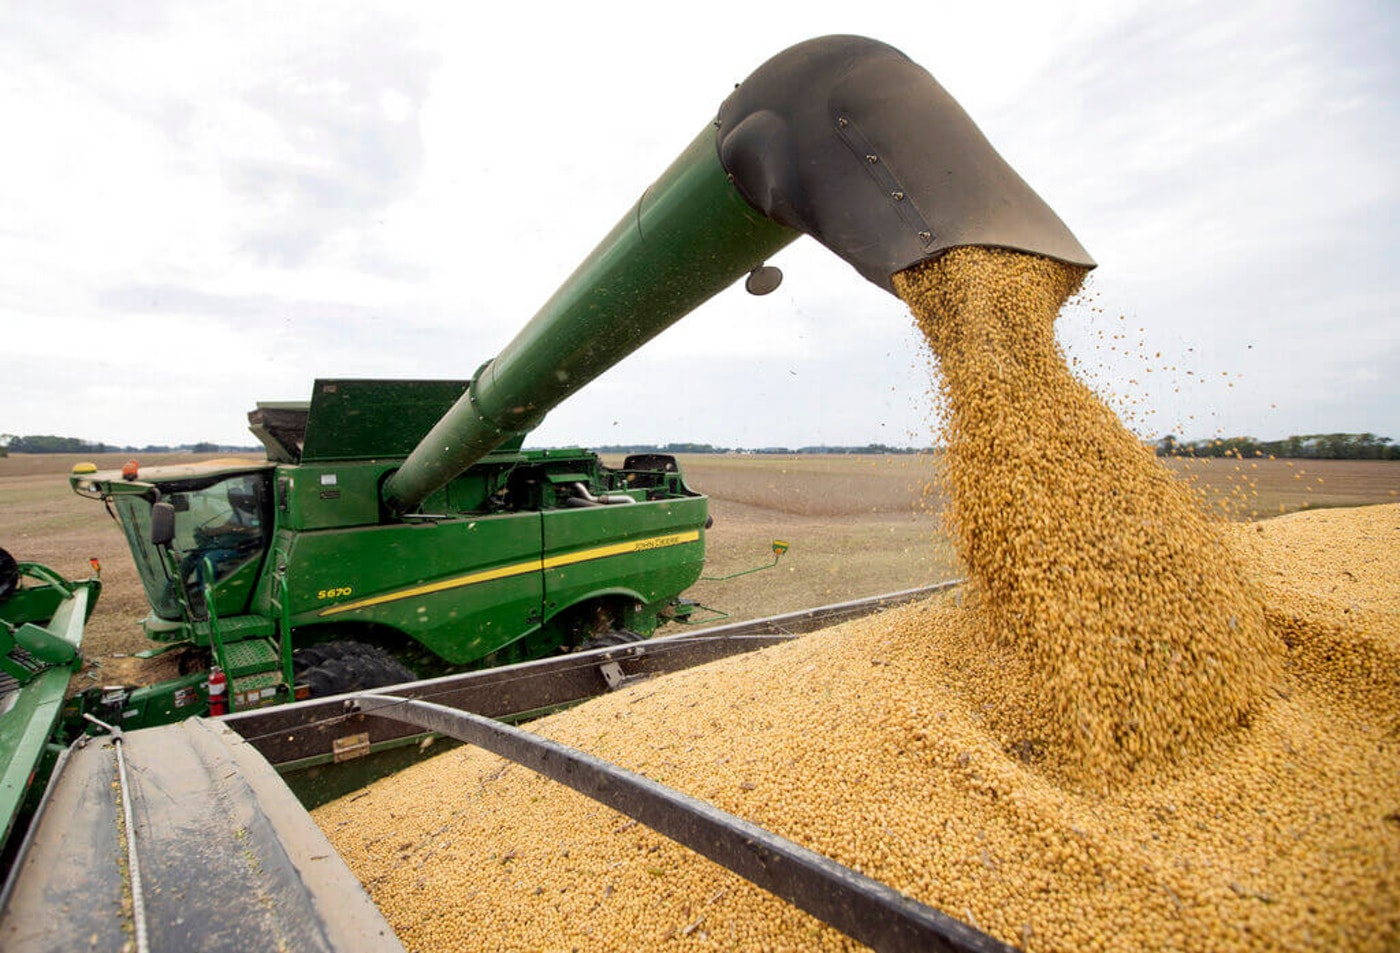 """In this Sept. 21, 2018, file photo, Mike Starkey offloads soybeans from his combine as he harvests his crops in Brownsburg, IN. The escalating trade war between the U.S. and China at that time caused anxiety among rural farmers and bankers. Upper Midwest soybean farmer Jamie Beyer said those were days of """"a little bit of panic."""" Many farmers would probably say the same of these days as well. (AP Photo/Michael Conroy, File)"""